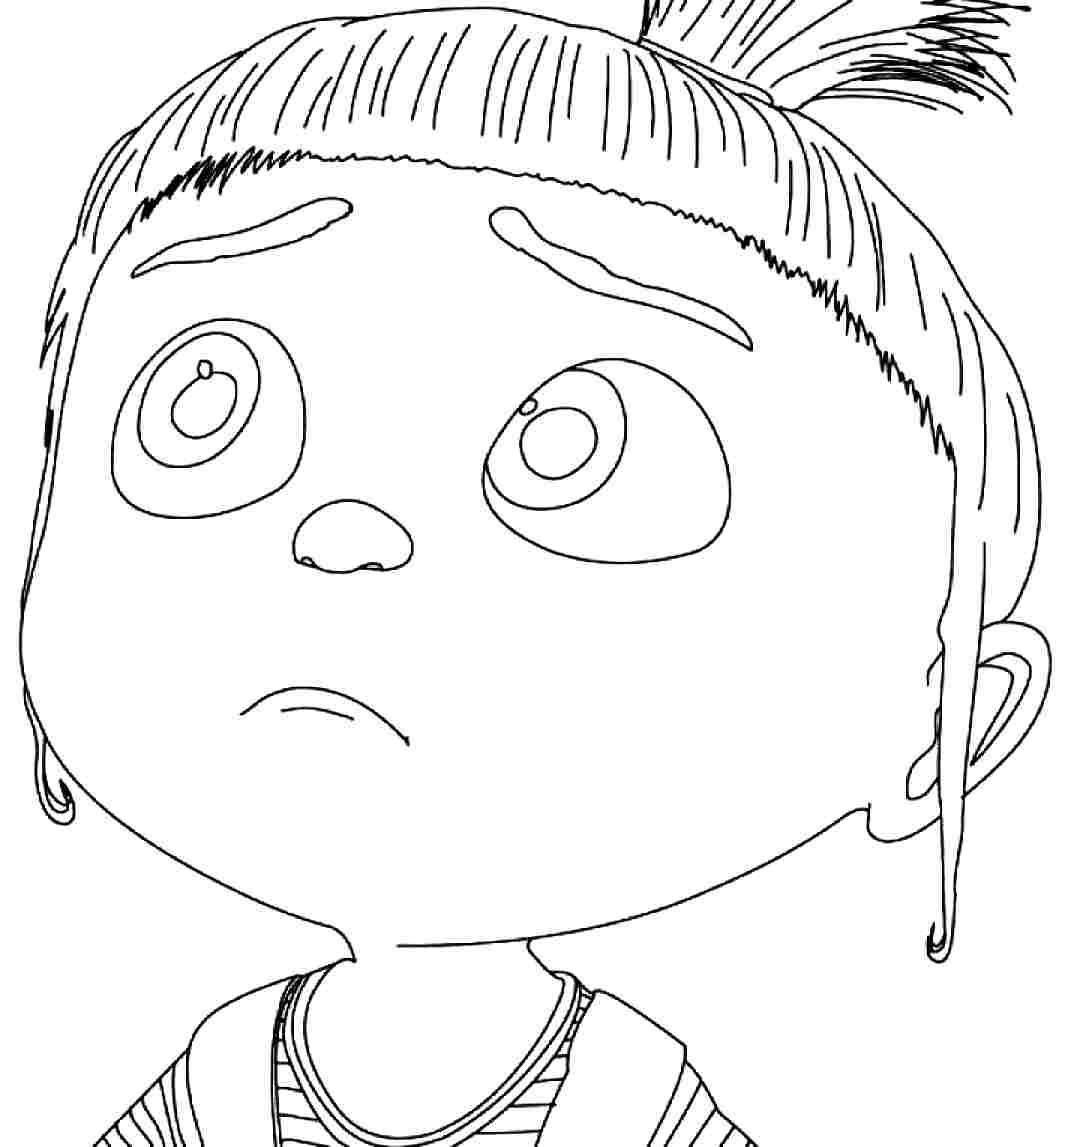 Agnes from Despicable Me coloring page | Free Printable ... |Despicable Me Agnes Unicorn Coloring Pages